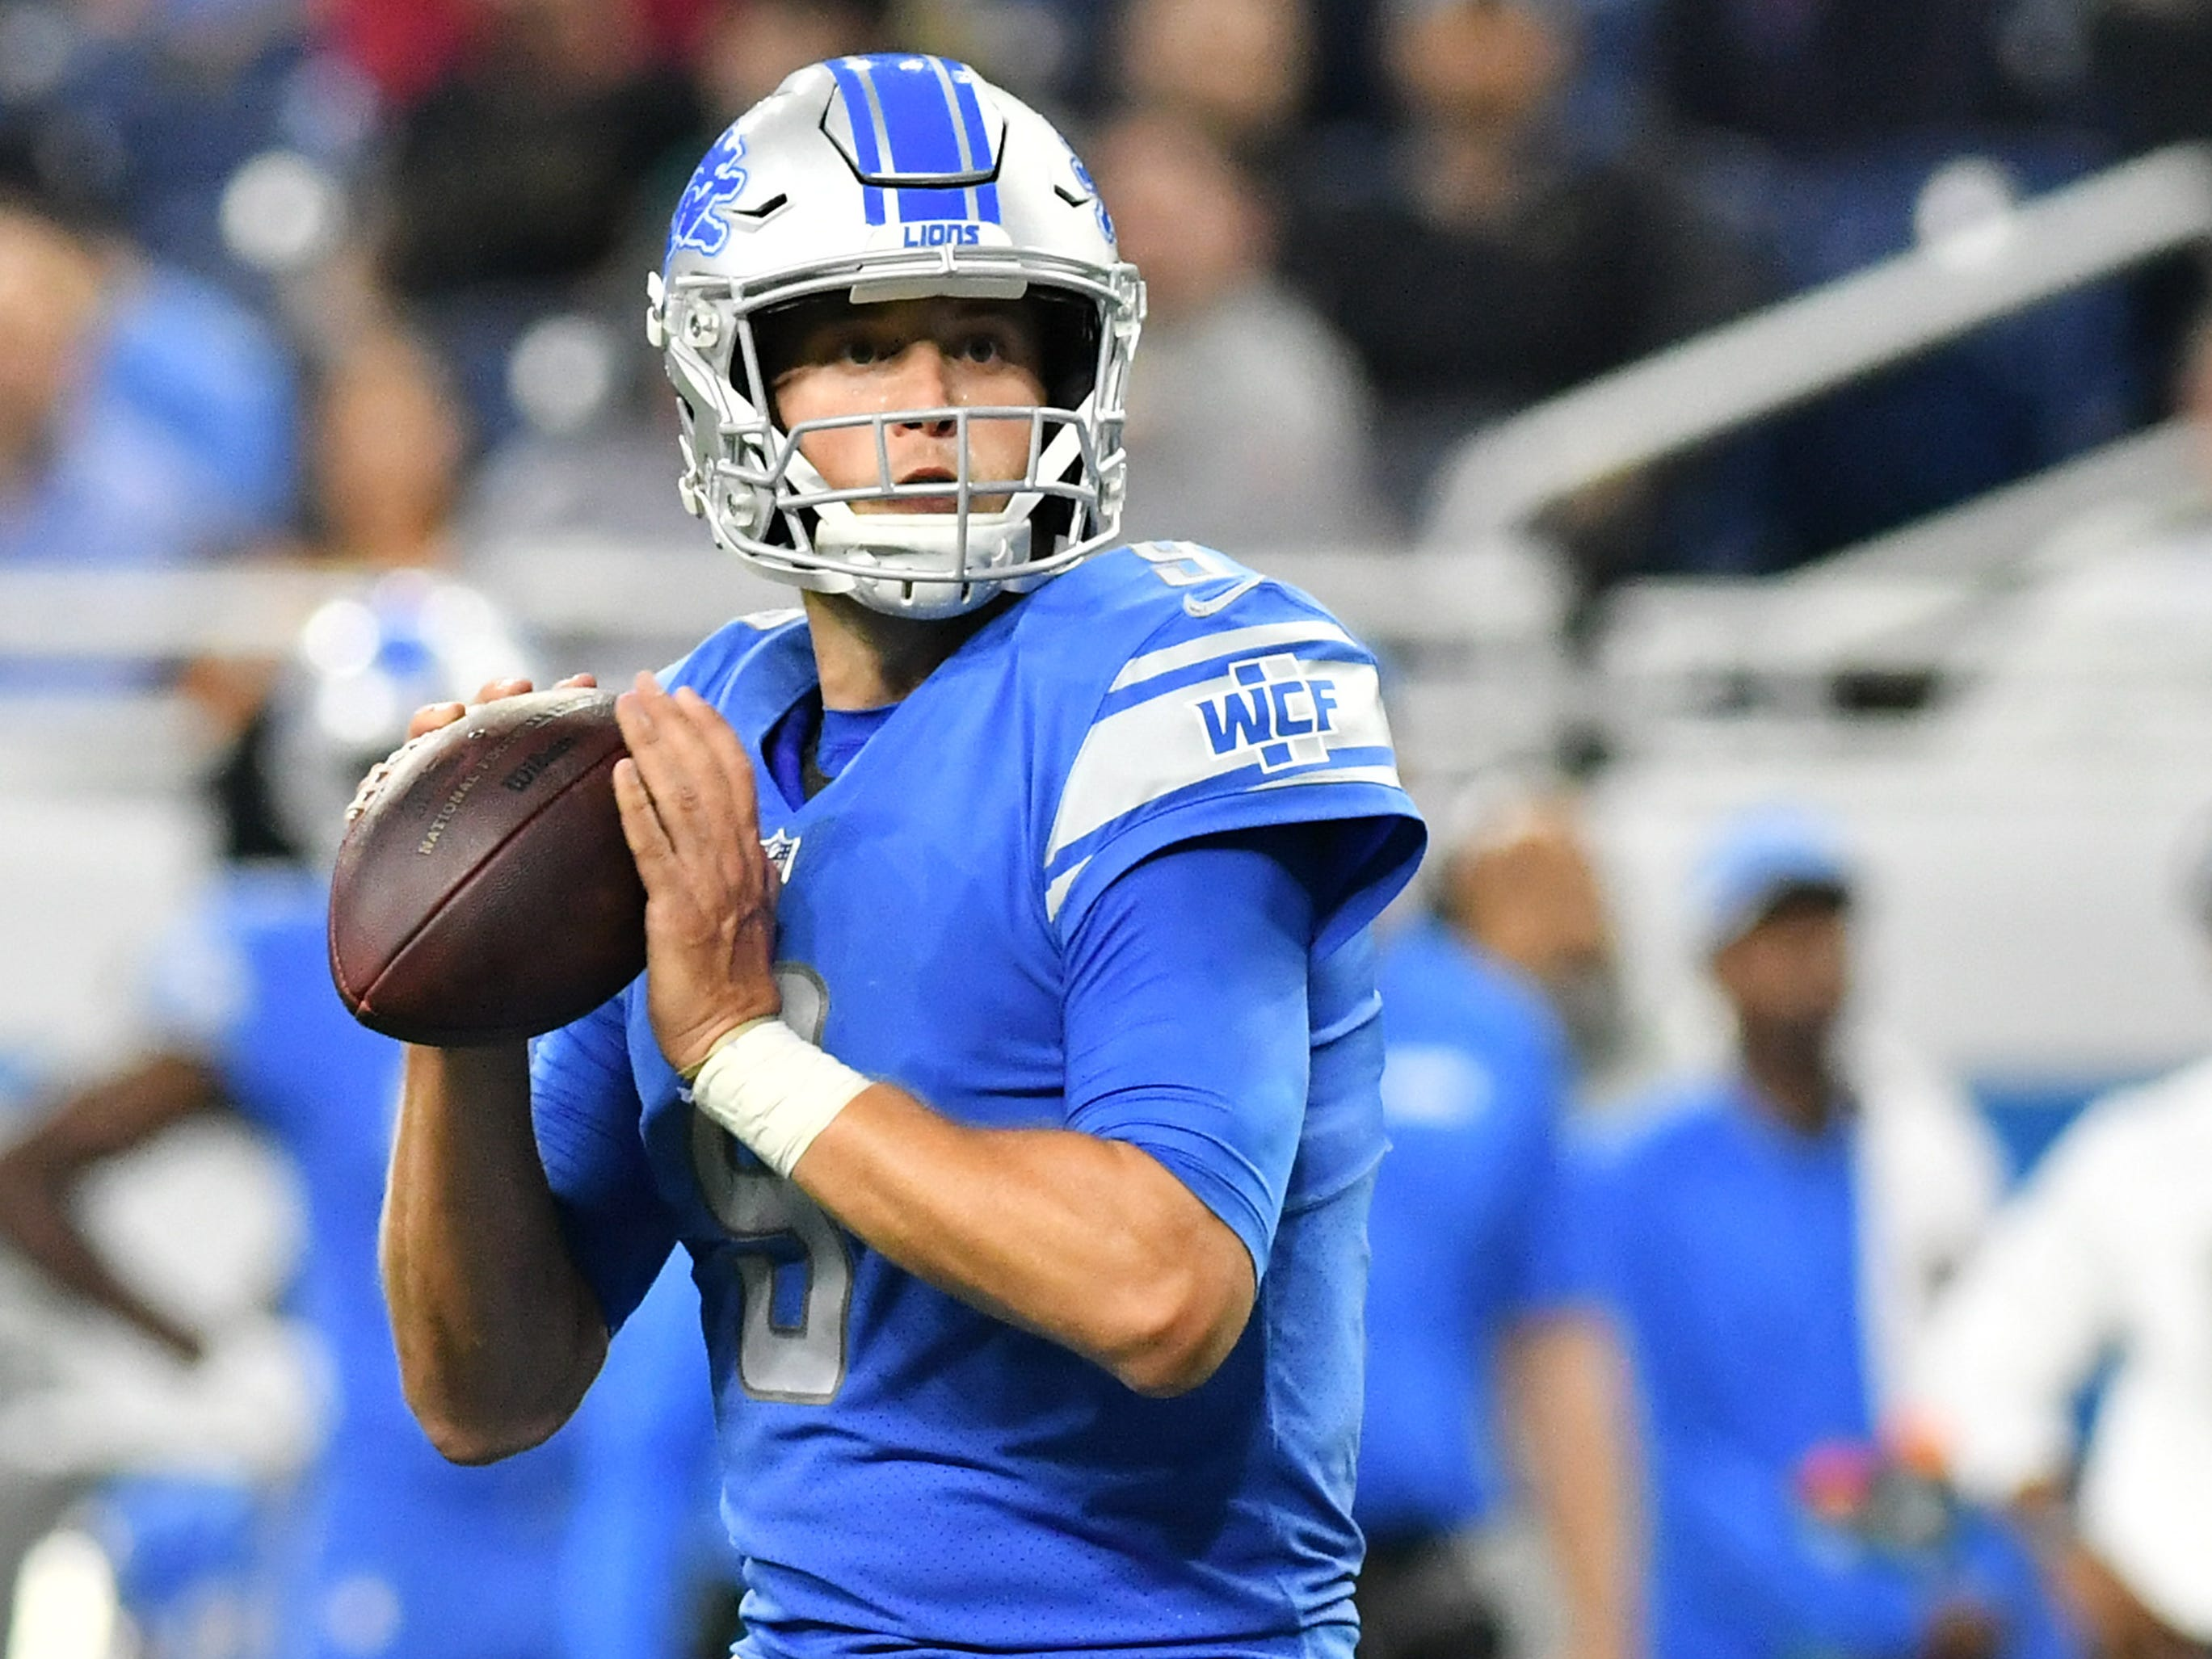 Lions quarterback Matthew Stafford looks to pass the ball in the fourth quarter.